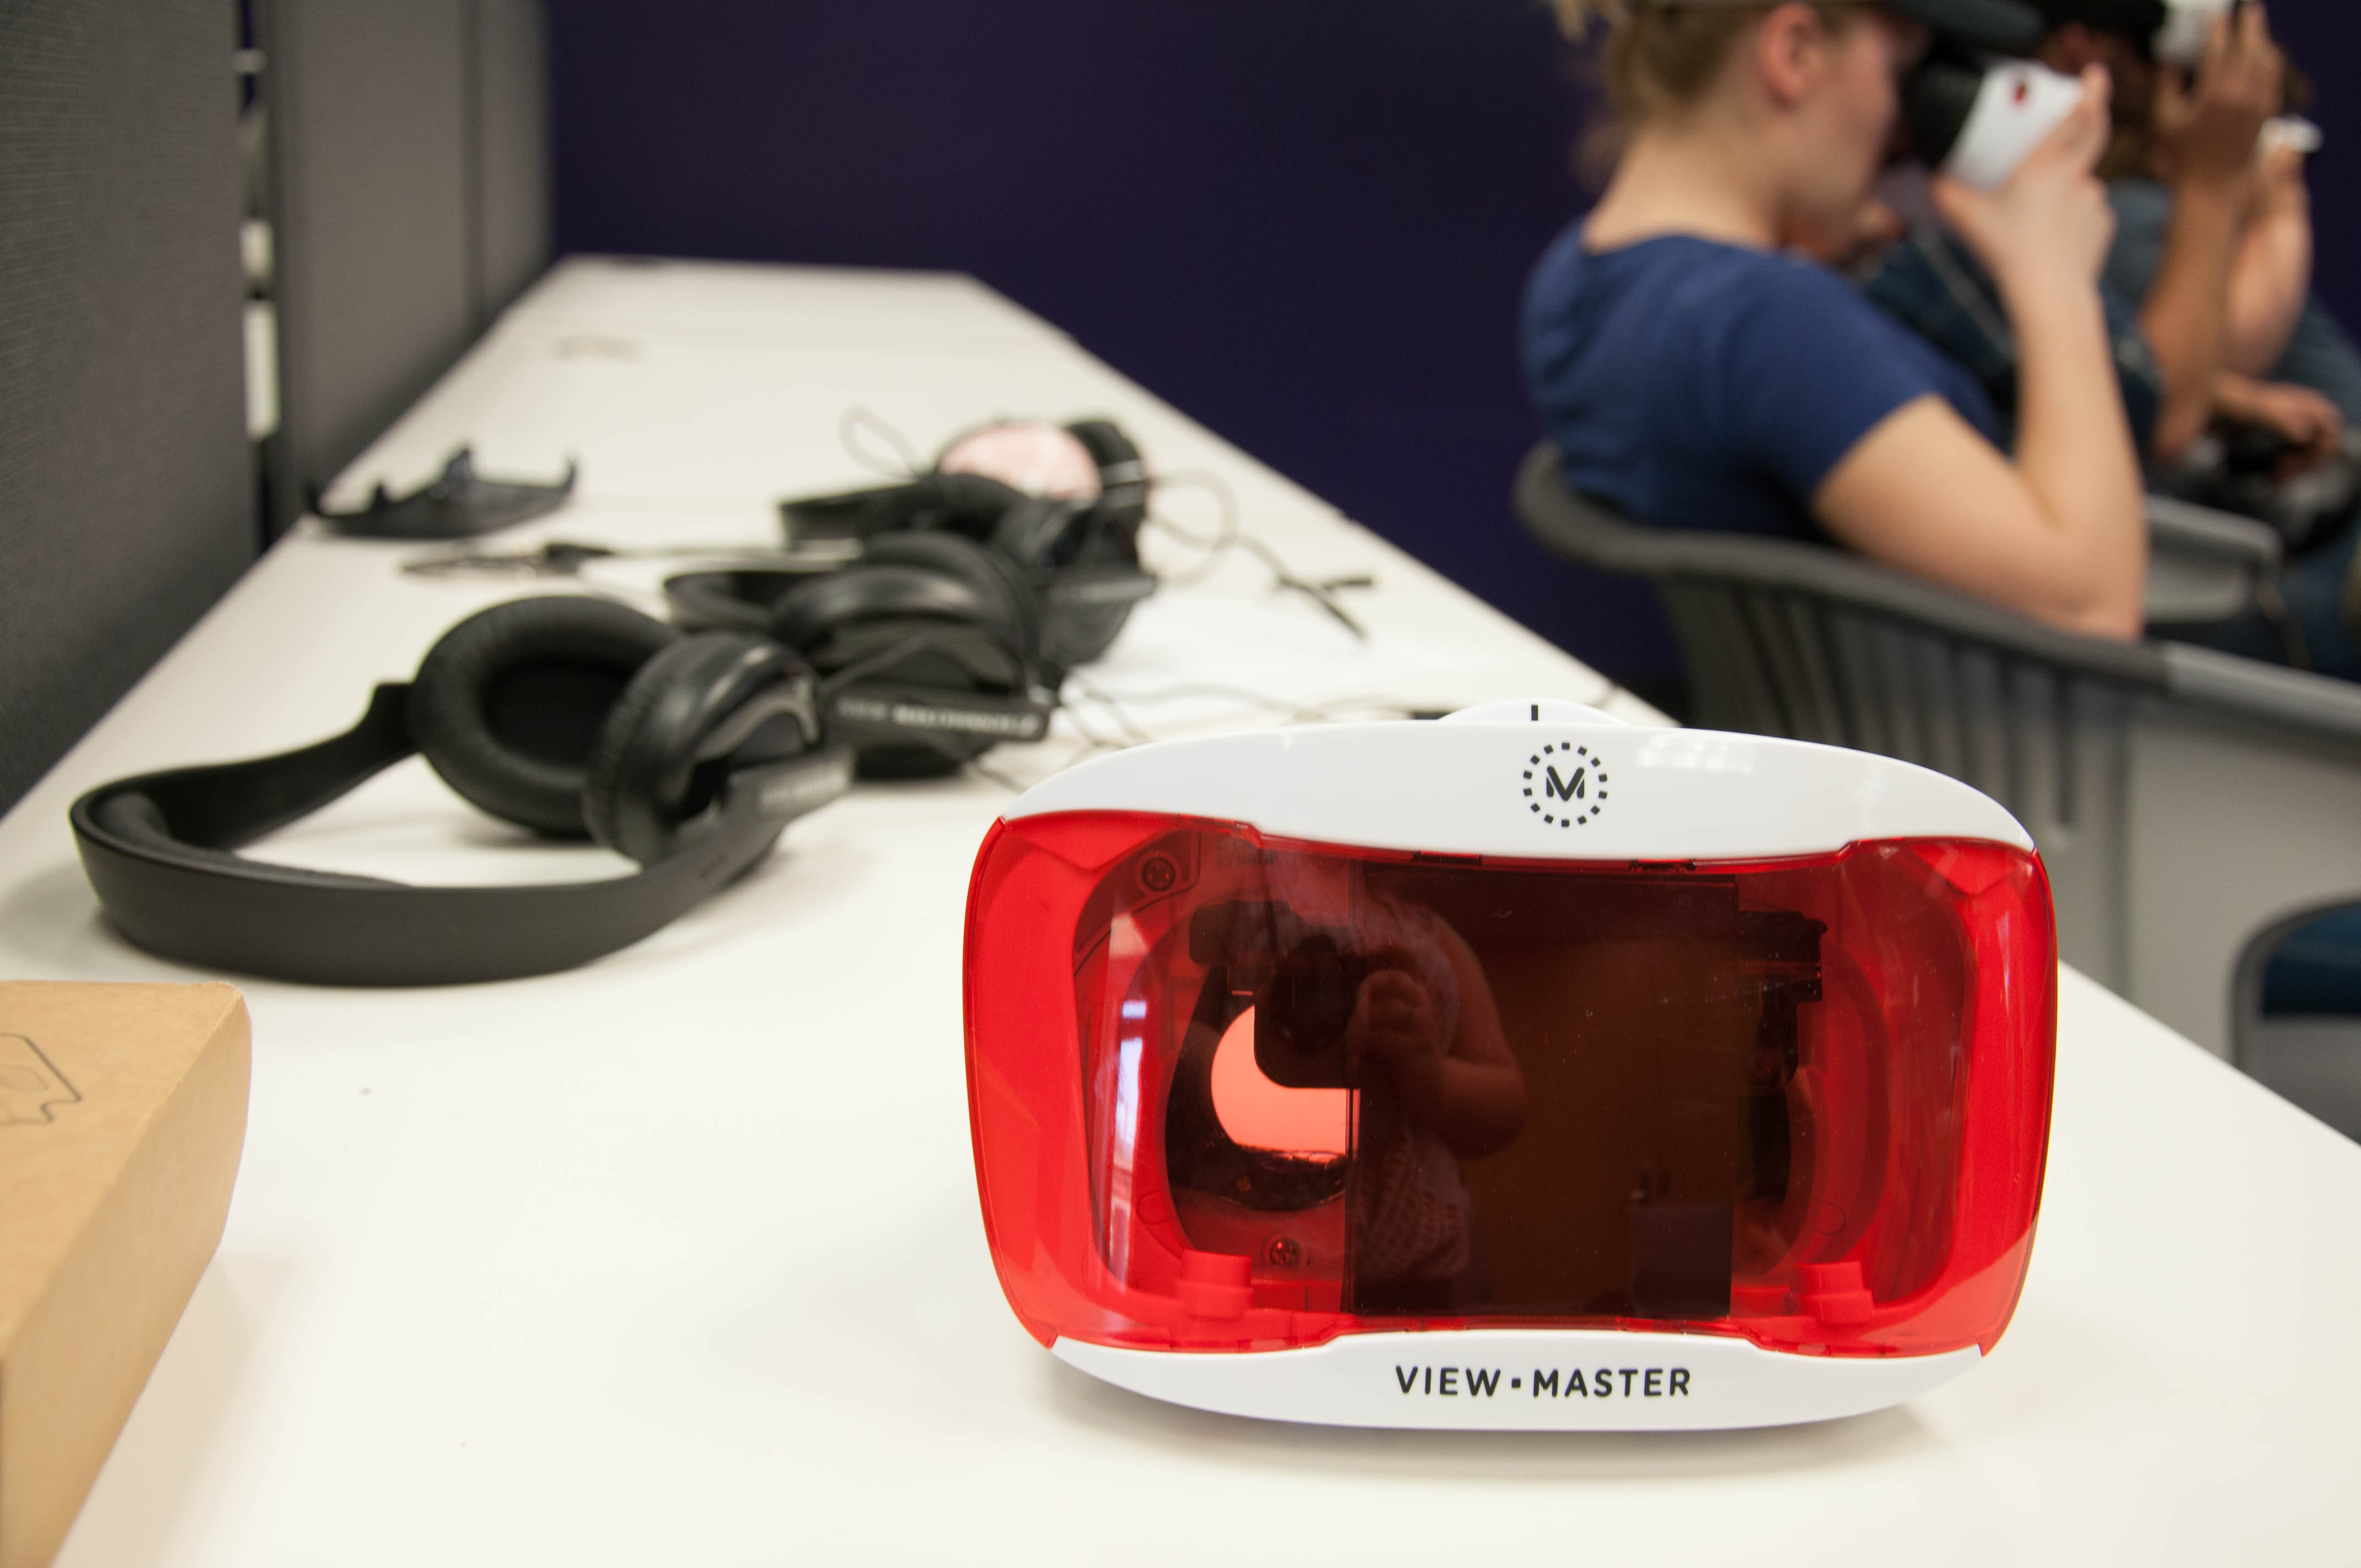 View Master Headset